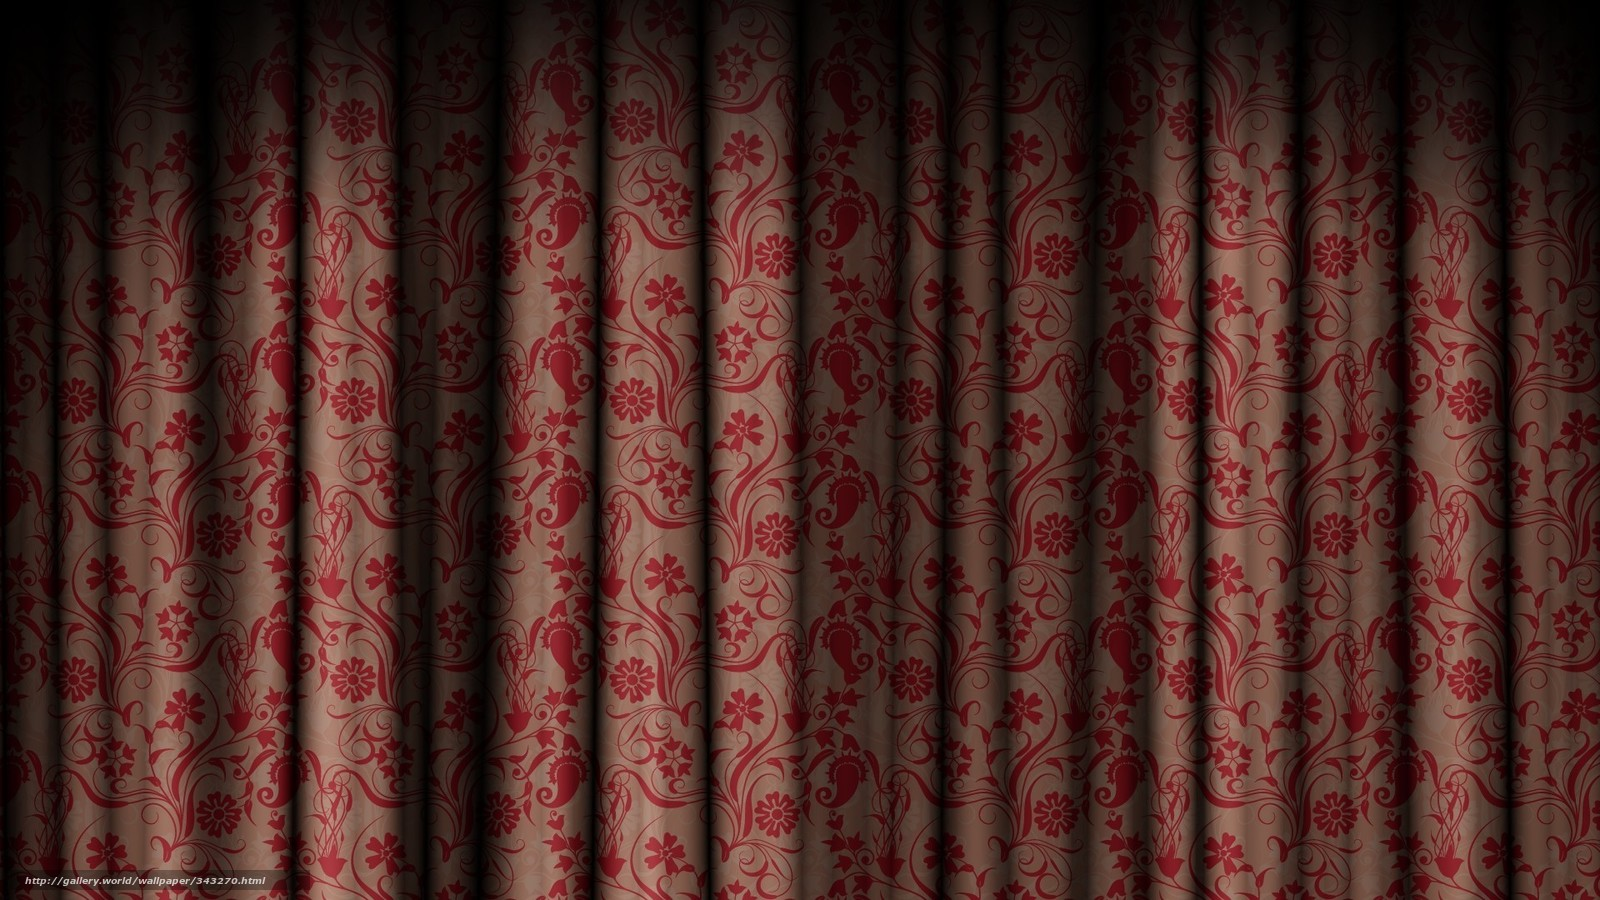 Download wallpaper texture texture curtain curtain free for Curtain patterns texture